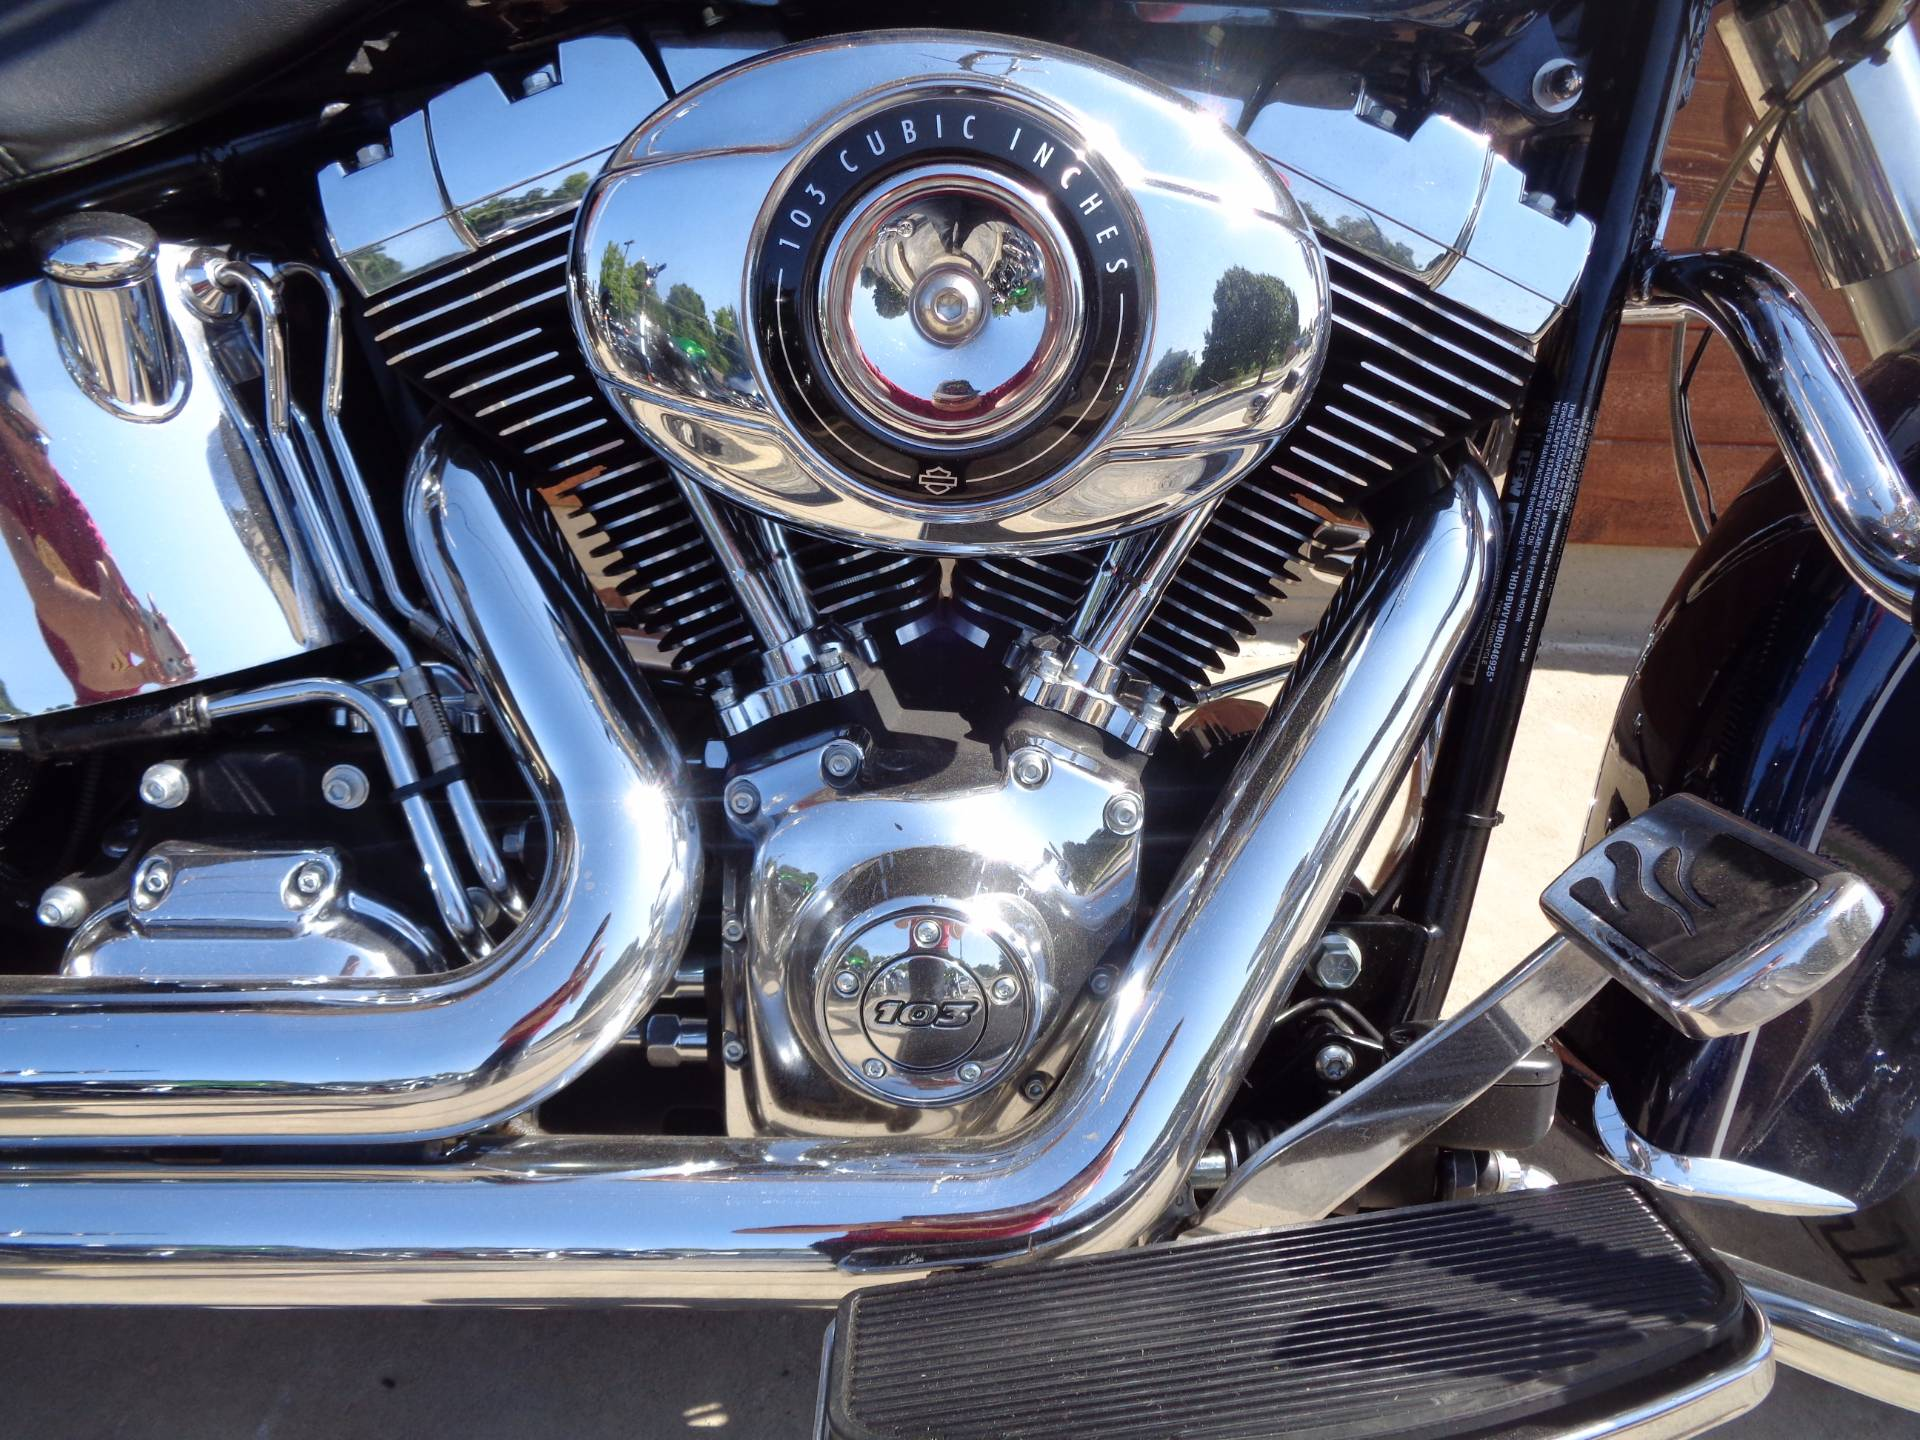 2013 Harley-Davidson Heritage Softail® Classic in Norman, Oklahoma